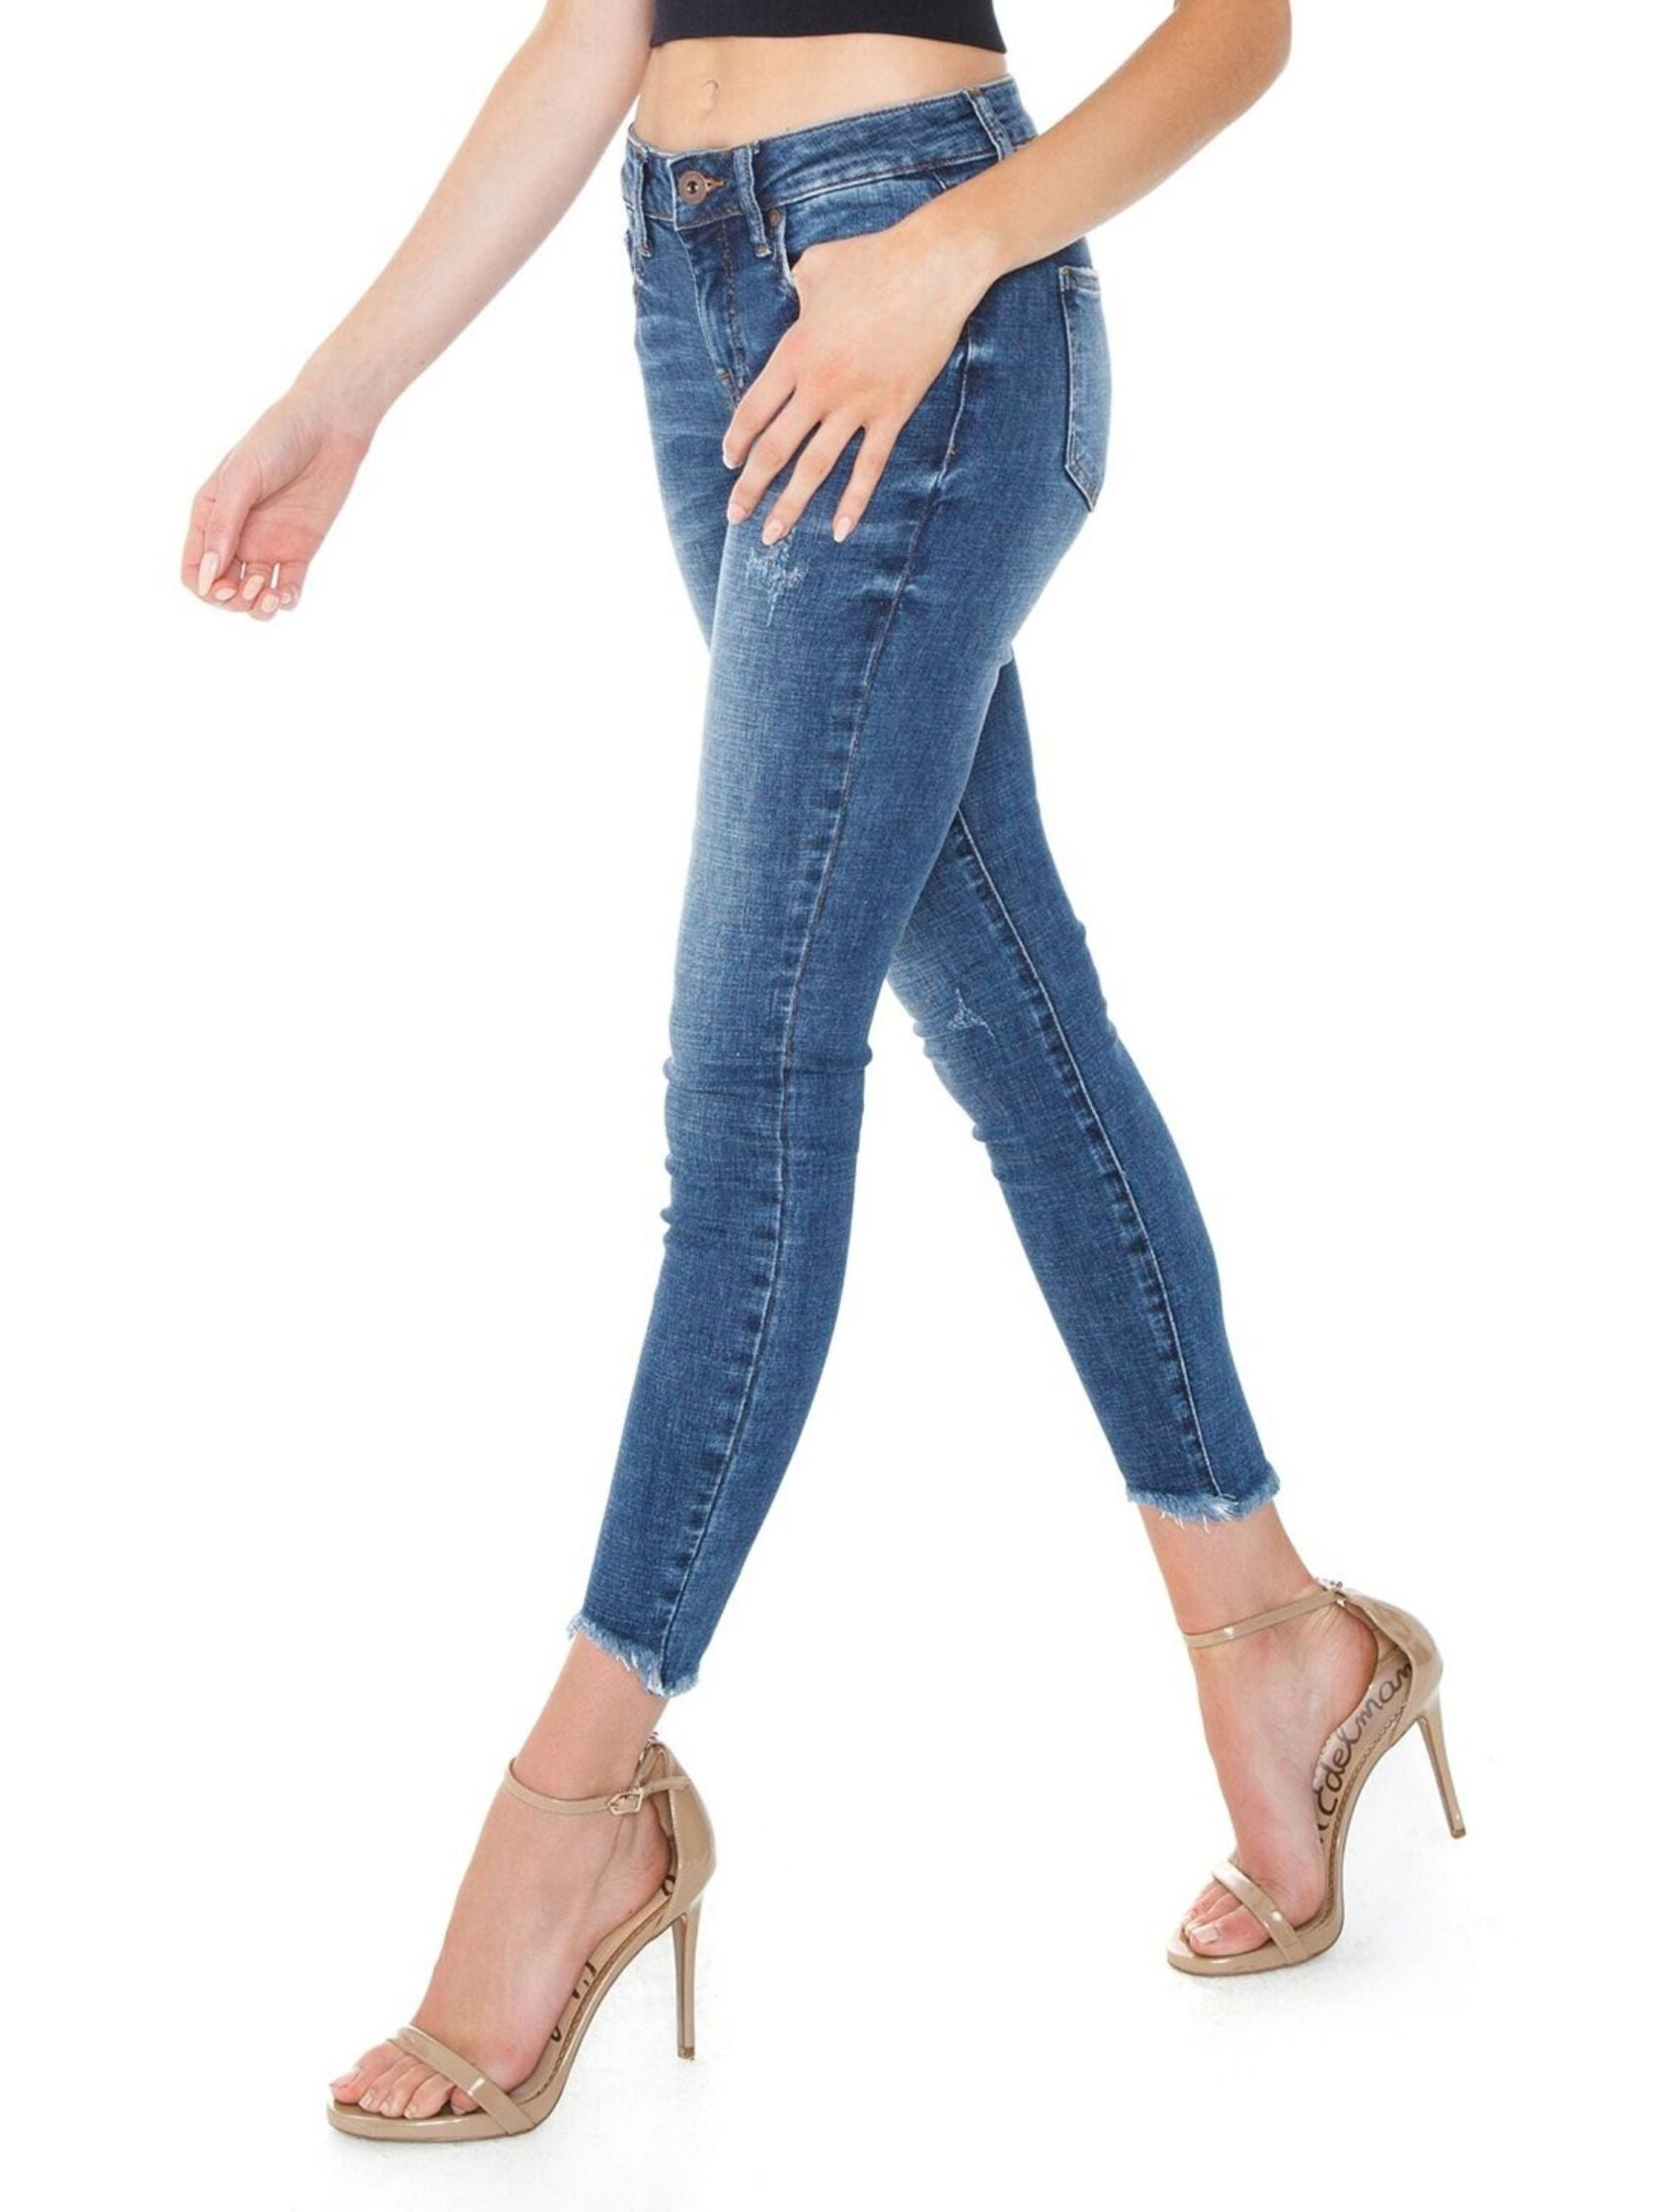 Women wearing a denim rental from PISTOLA called Audrey Mid Rise Skinny